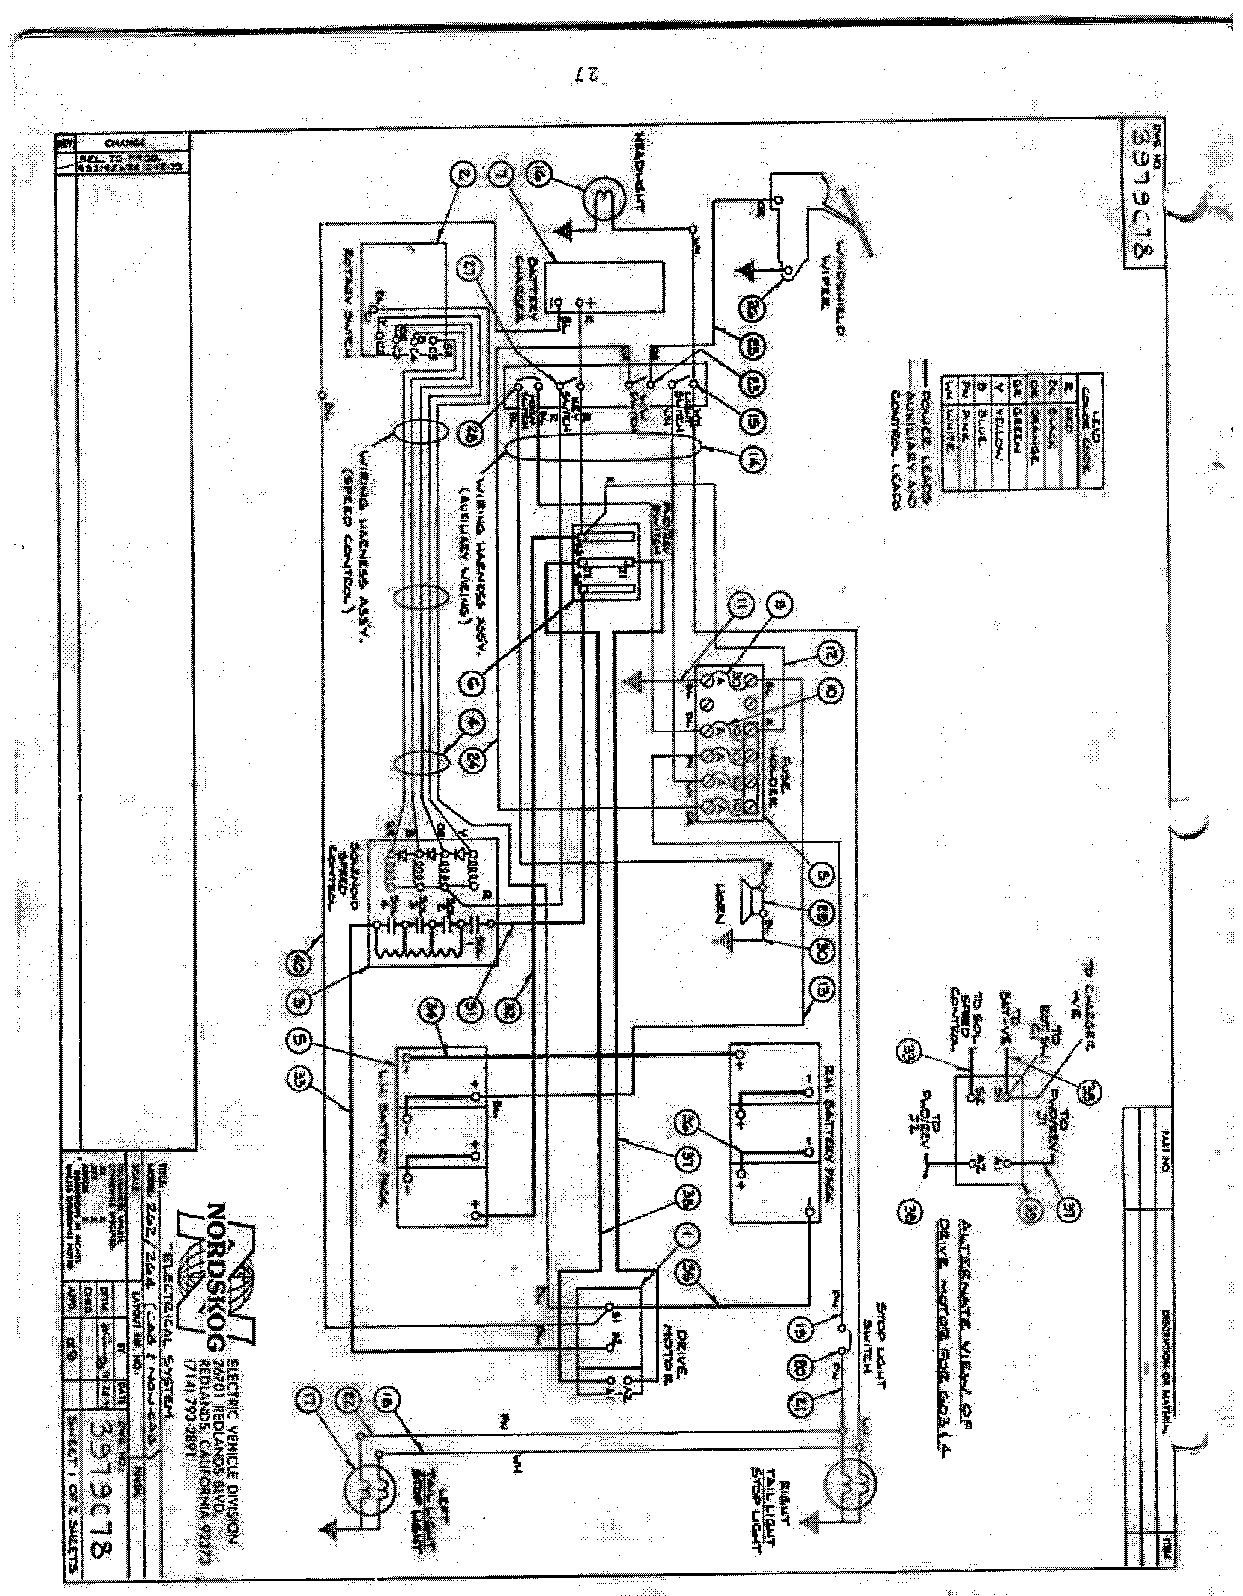 hight resolution of tomberlin emerge wiring diagramtomberlin wiring diagram 2